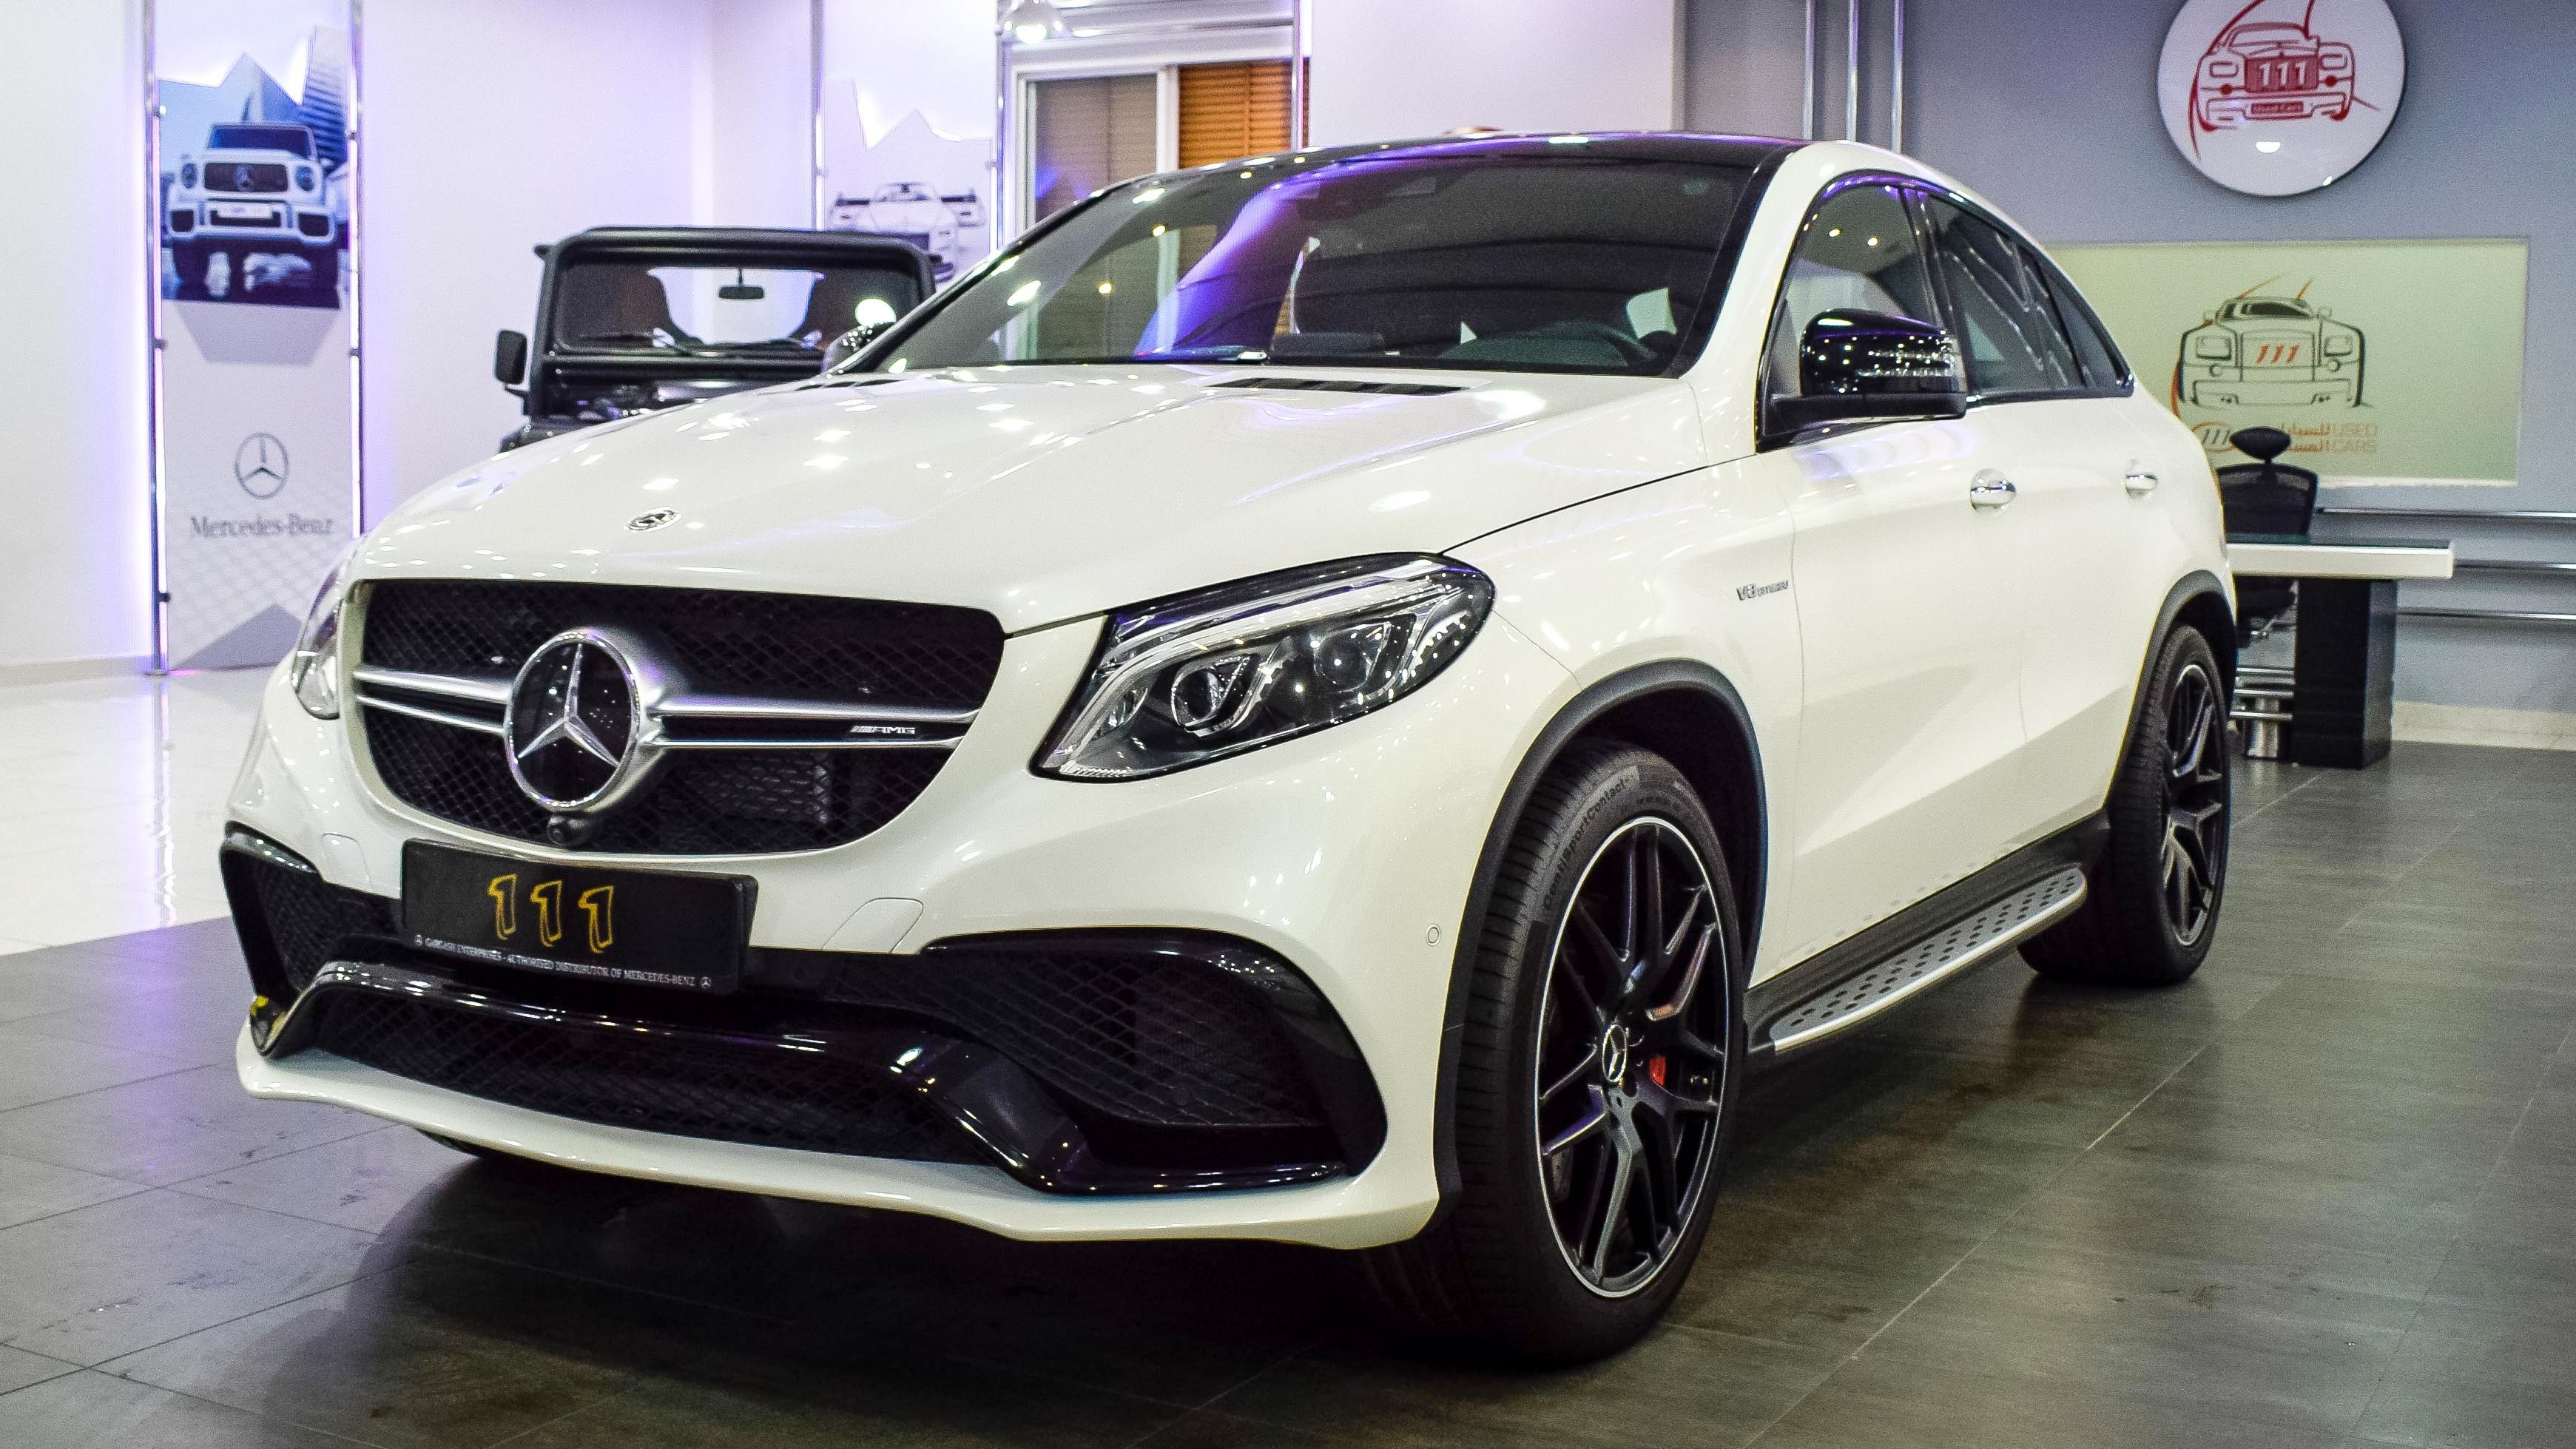 2018 Mercedes Benz Gle 63 S V8 Biturbo Amg Gcc Specs Warranty 5 Years And Service Contract Mercedes Benz Gle Benz Mercedes Benz